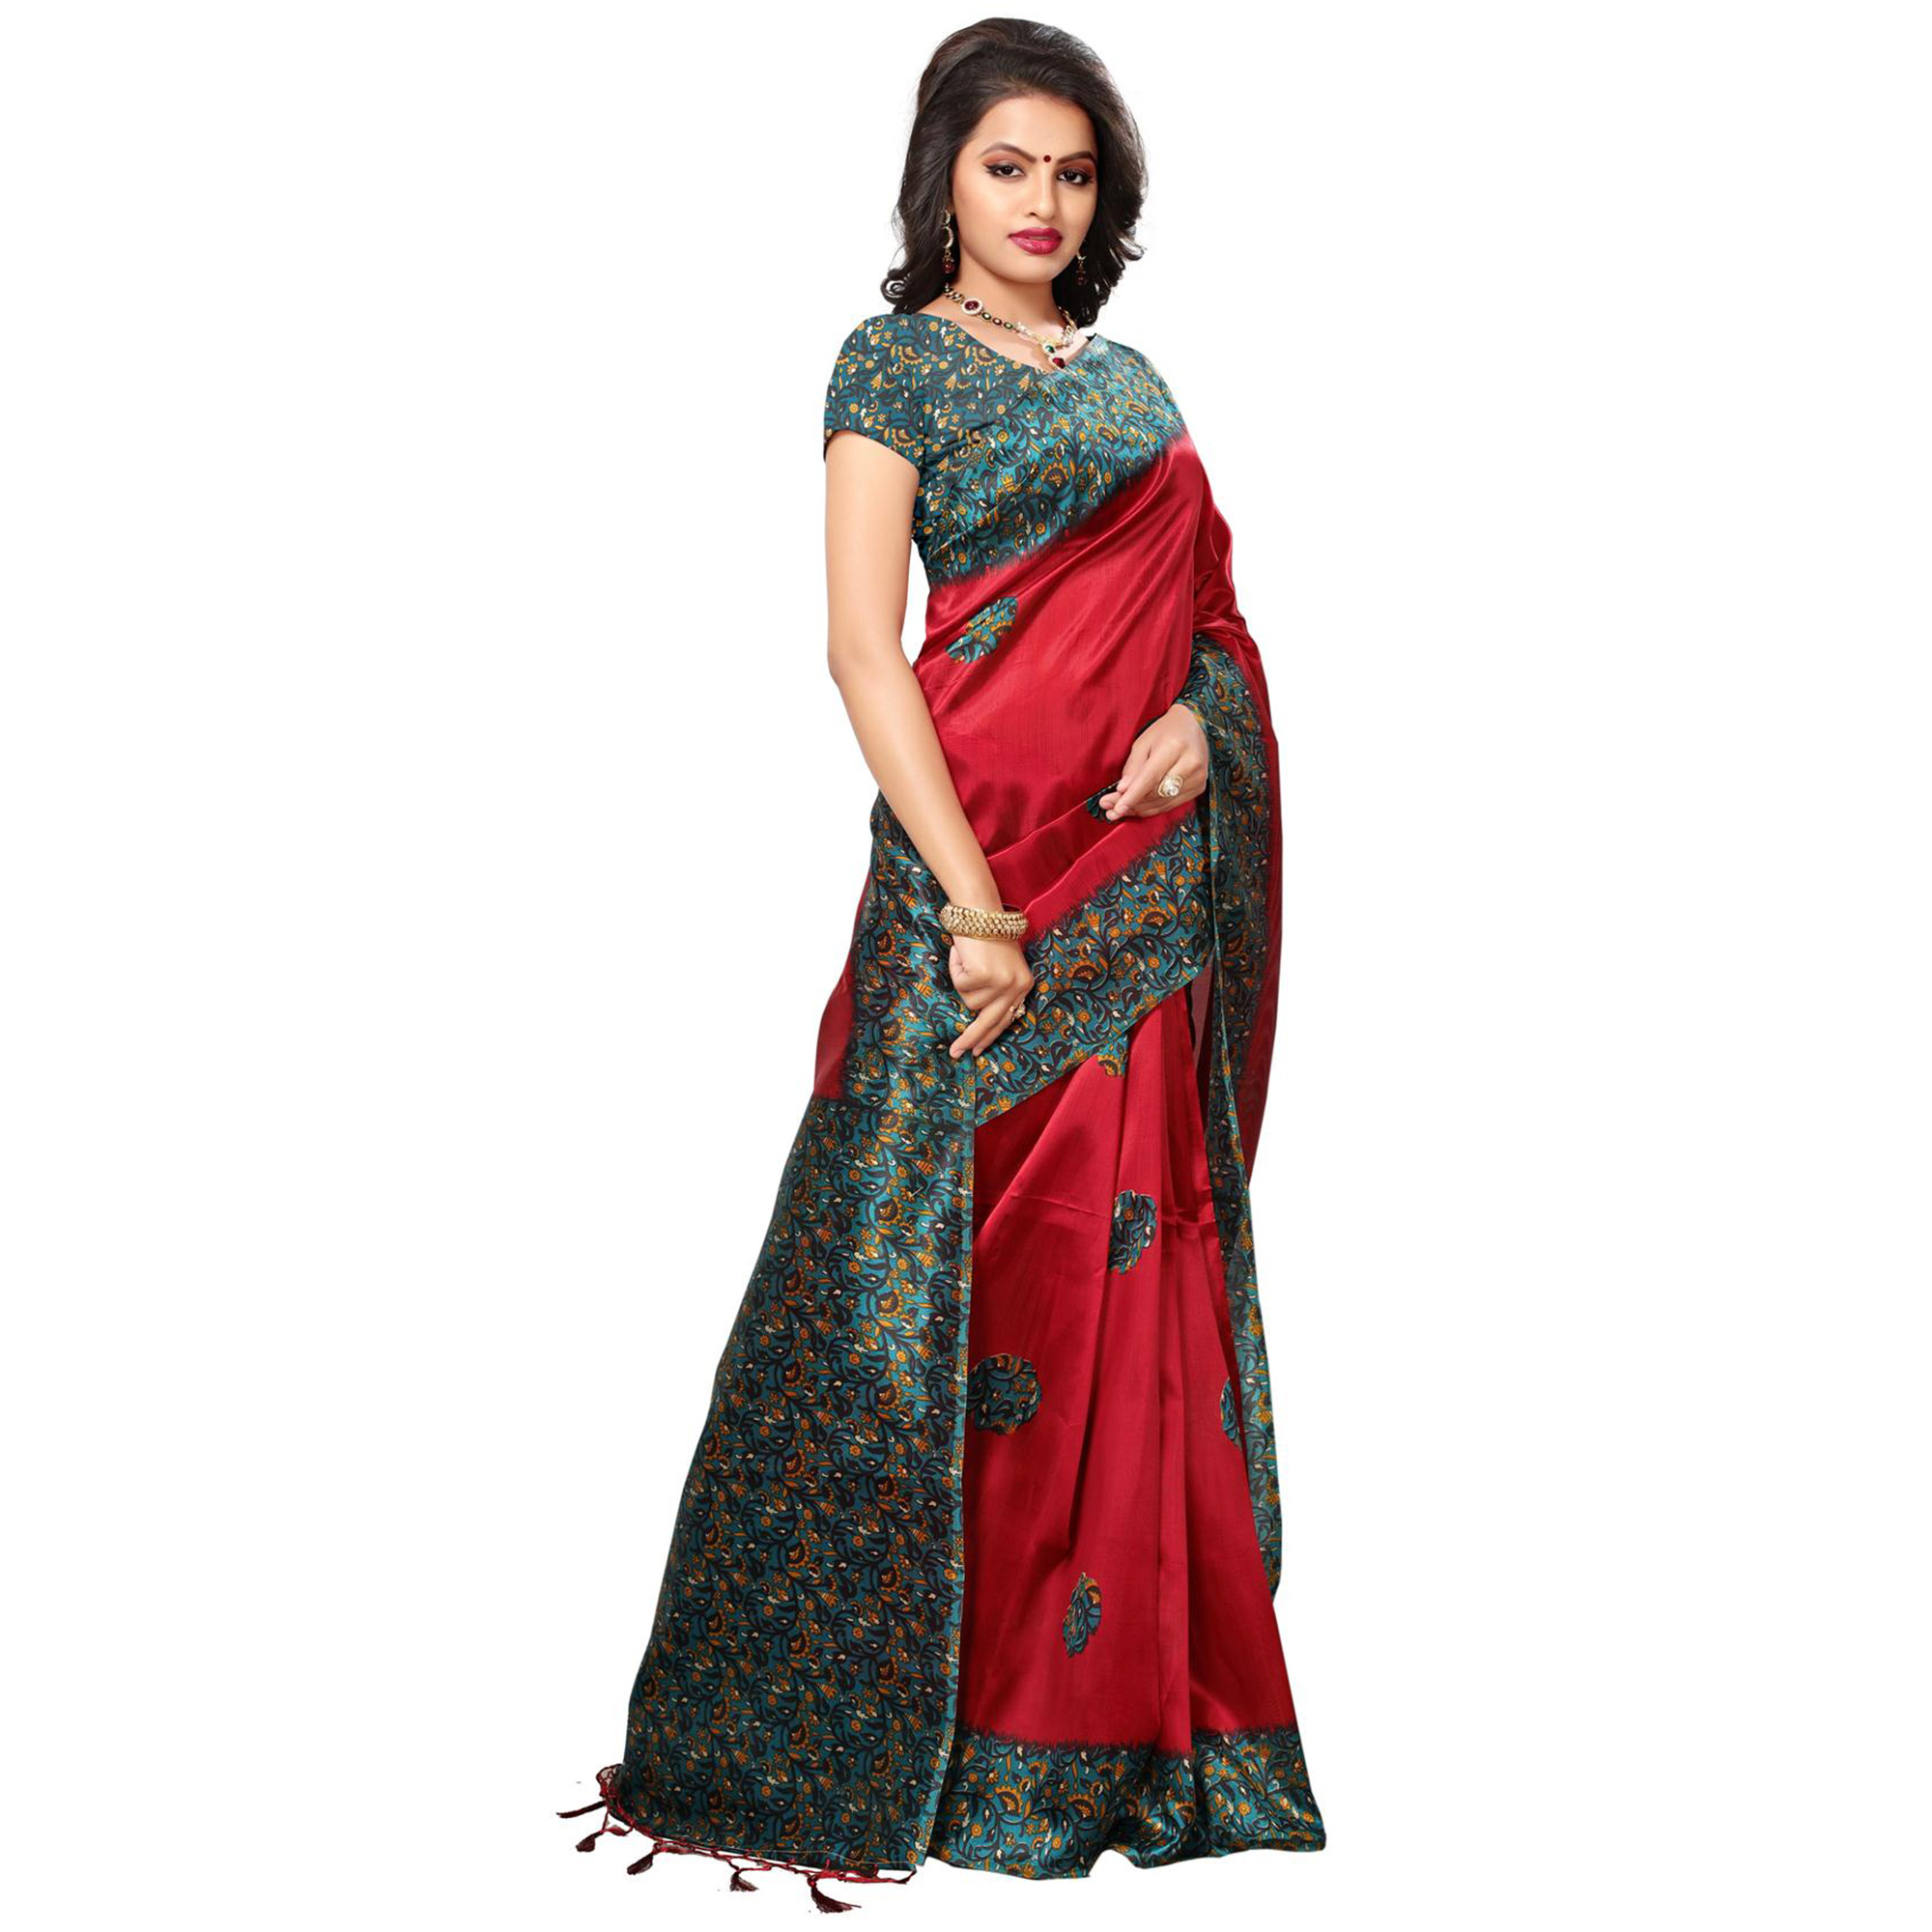 Staring Red Colored Festive Wear Printed Mysore Art Silk Saree